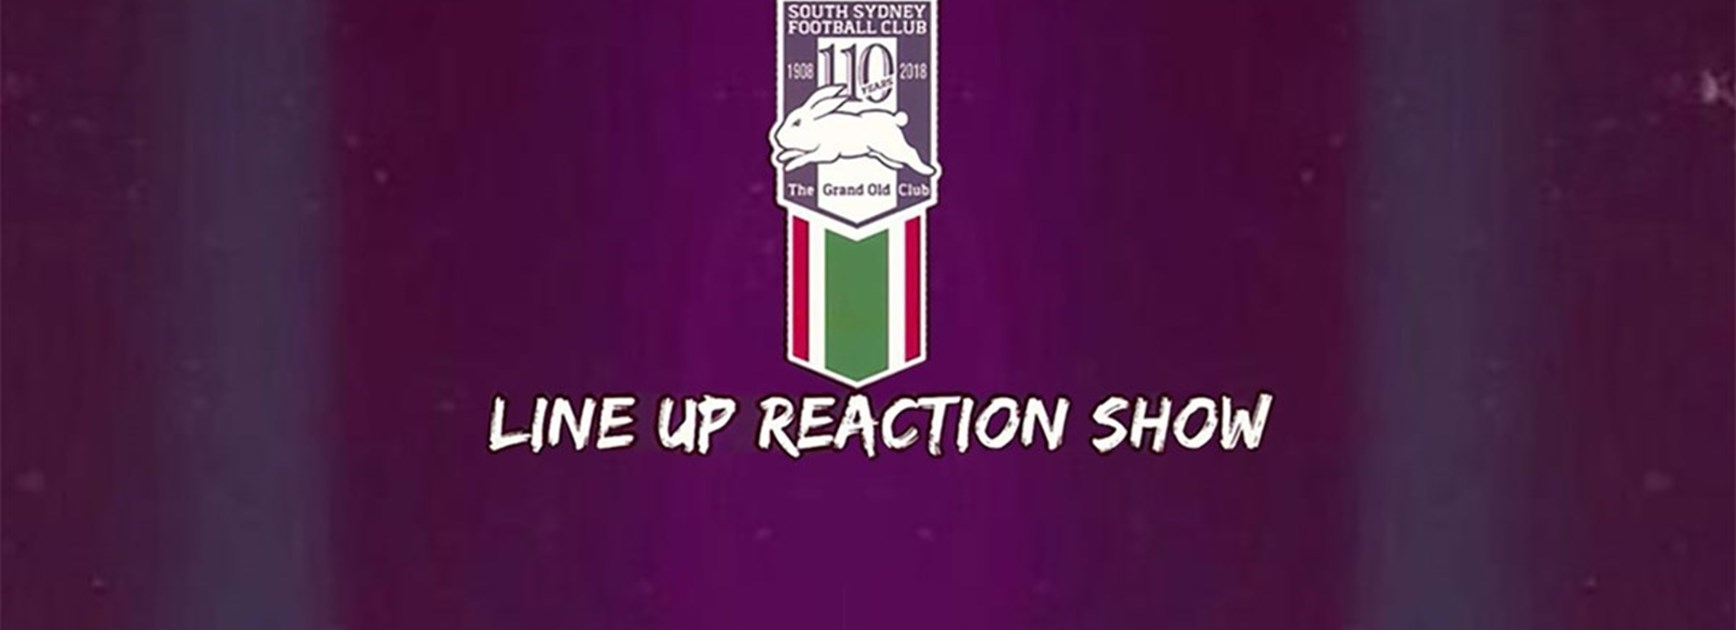 Line Up Reaction Show - Rnd 7 Raiders